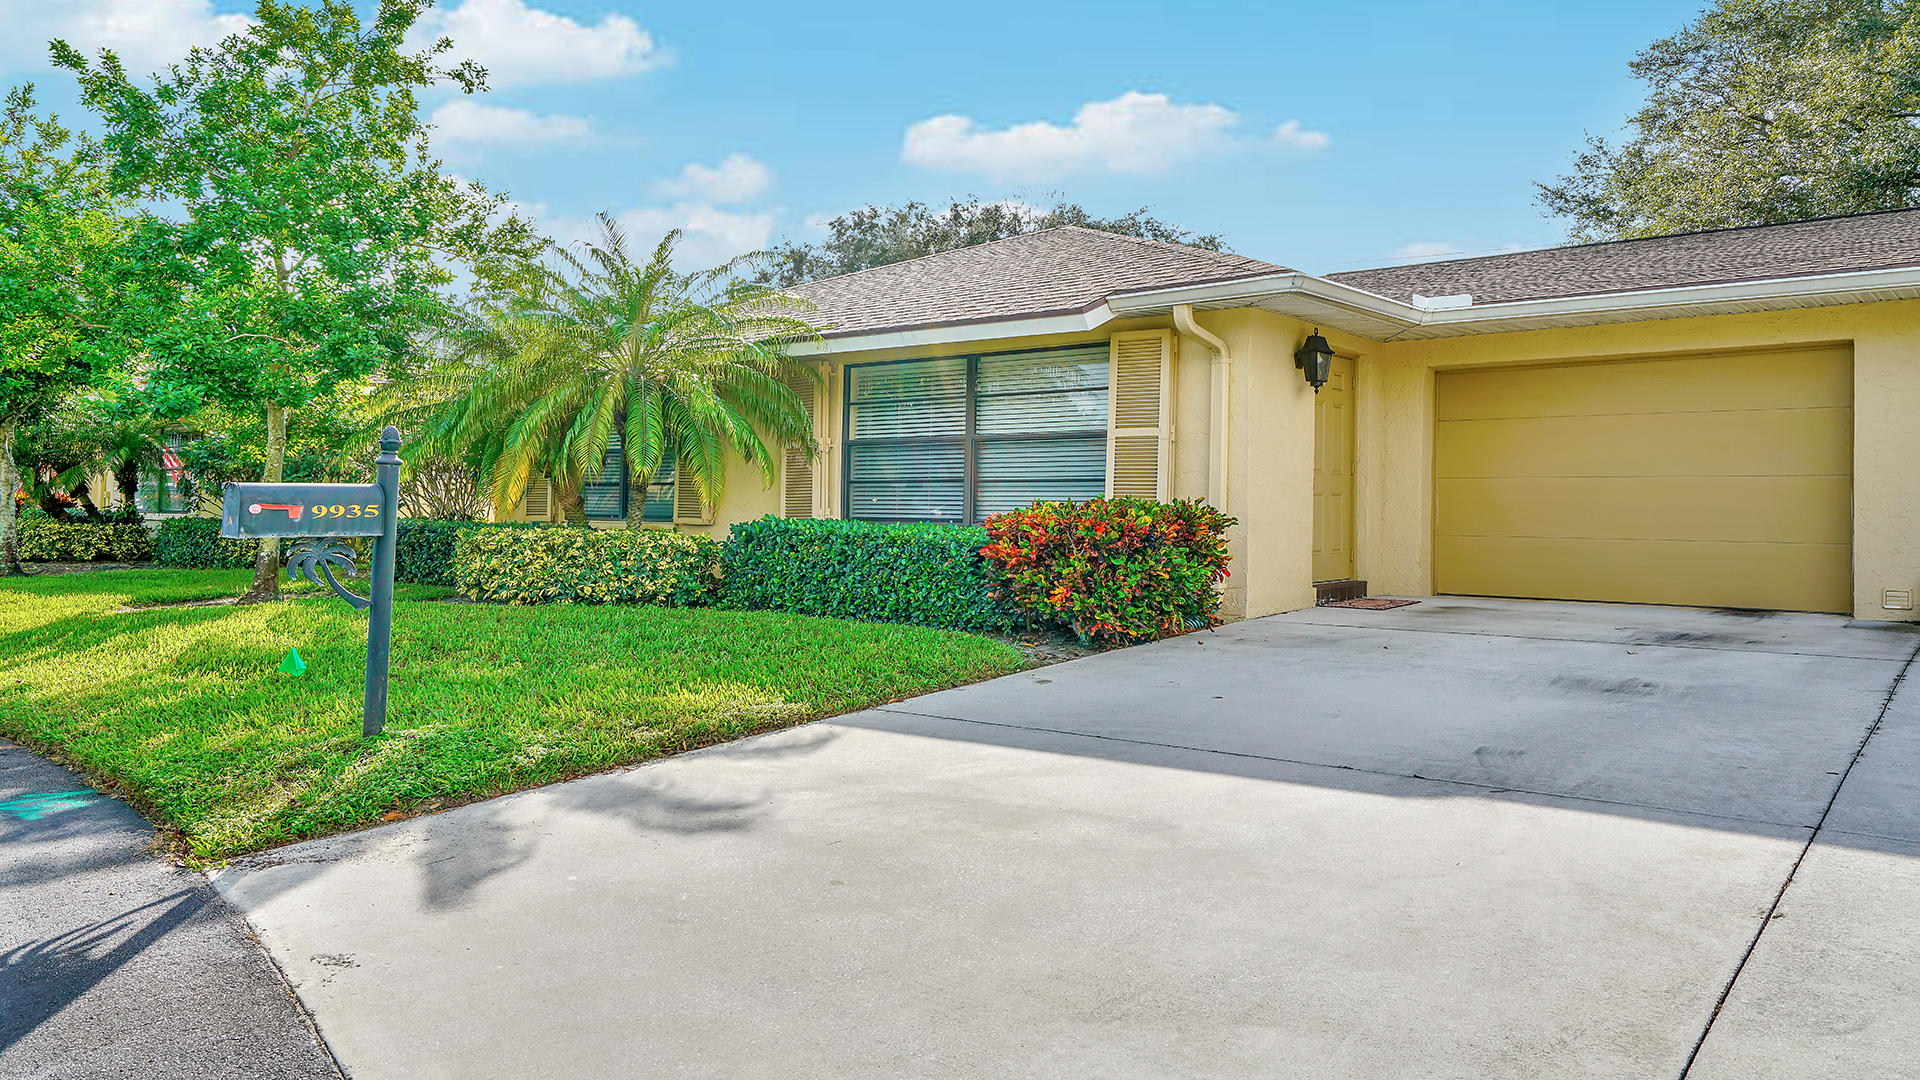 Home for sale in Bent Tree Boynton Beach Florida